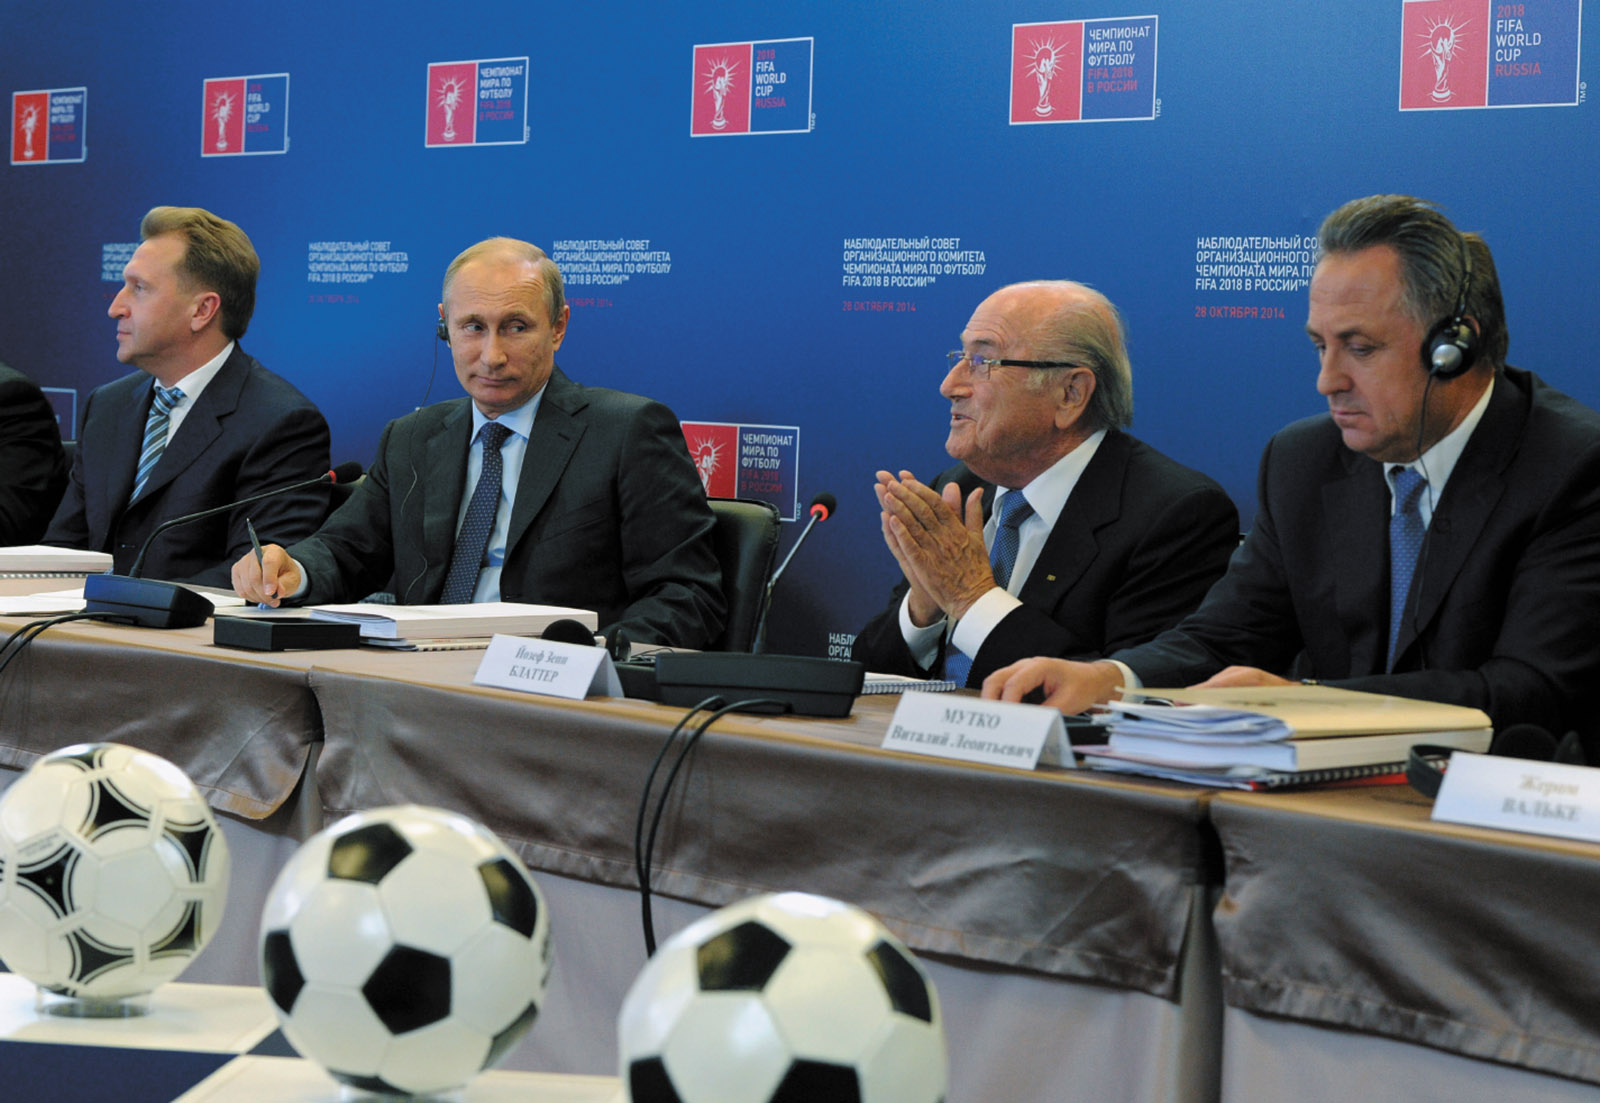 Mikhail Klimentyev/RIA Novosti/Kremlin/Reuters Russian President Vladimir Putin and FIFA President Sepp Blatter discussing the 2018 World Cup, Moscow, October 2014. At left is Russian Deputy Prime Minister Igor Shuvalov; at right is Russian Sports Minister Vitaly Mutko.